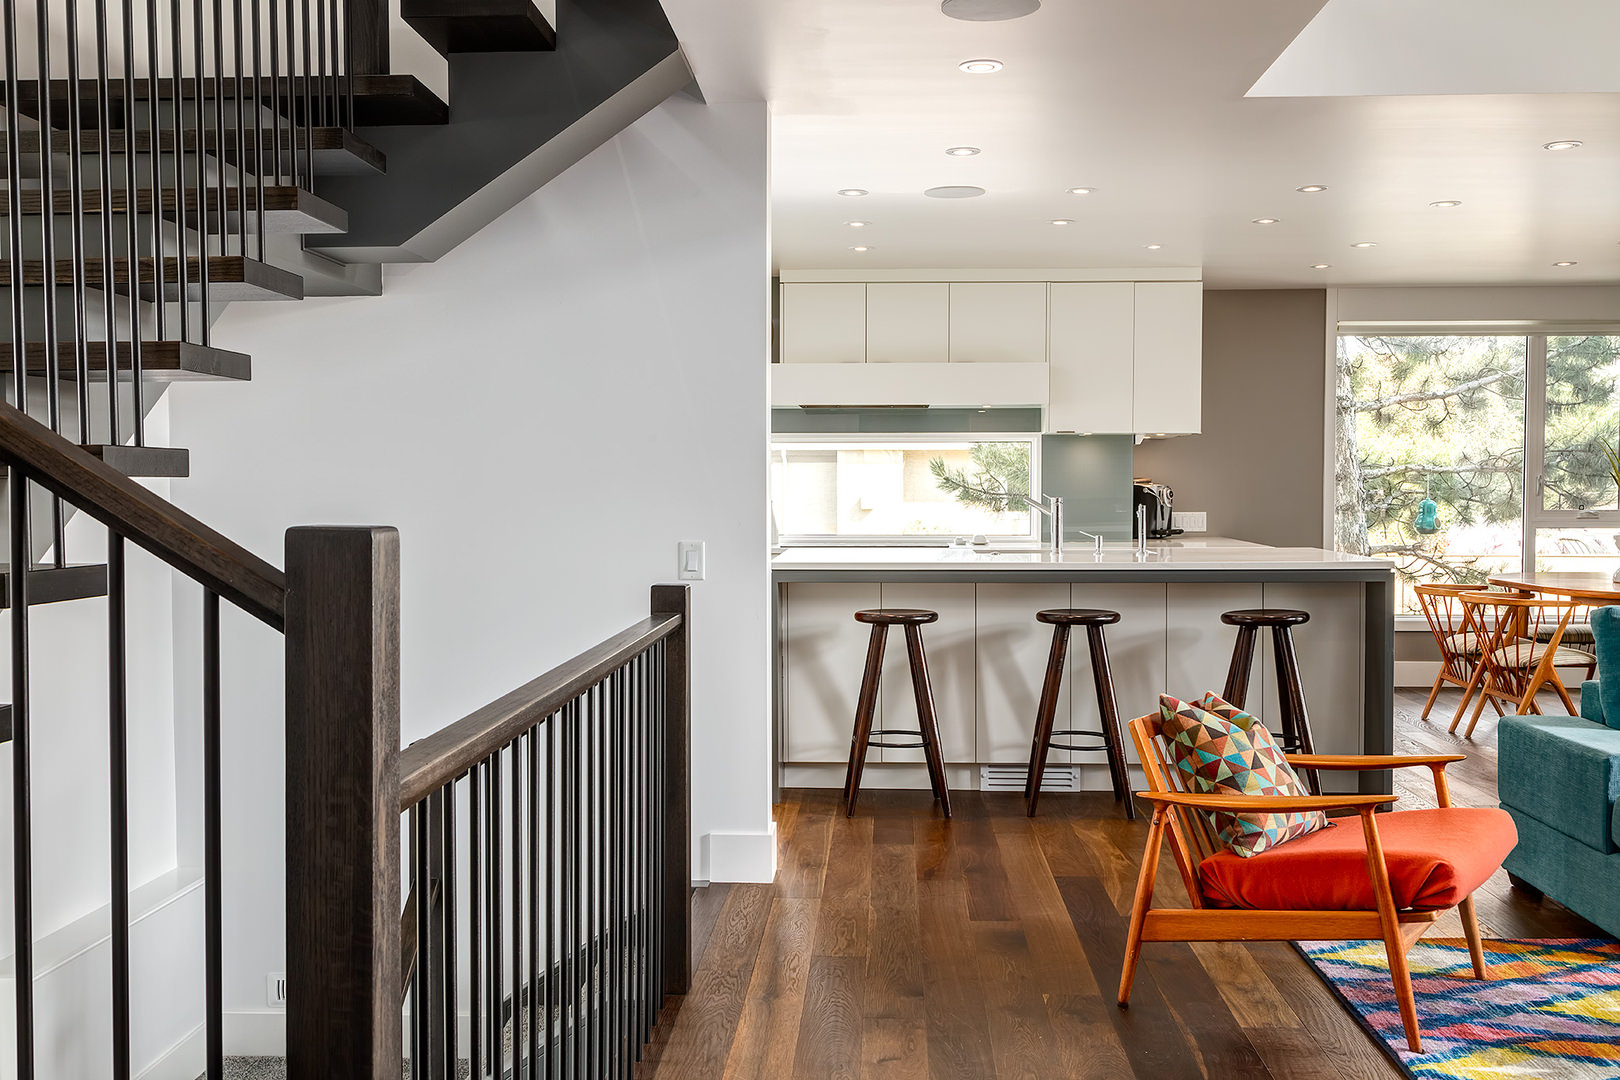 The open floor concept revealing the interconnected kitchen, dining and living area. The kitchen is made of plain and very minimalist designs with touches of wooden bar stools, the staircase railing is made of hard wood, while the living area is designed in a most lively tone.